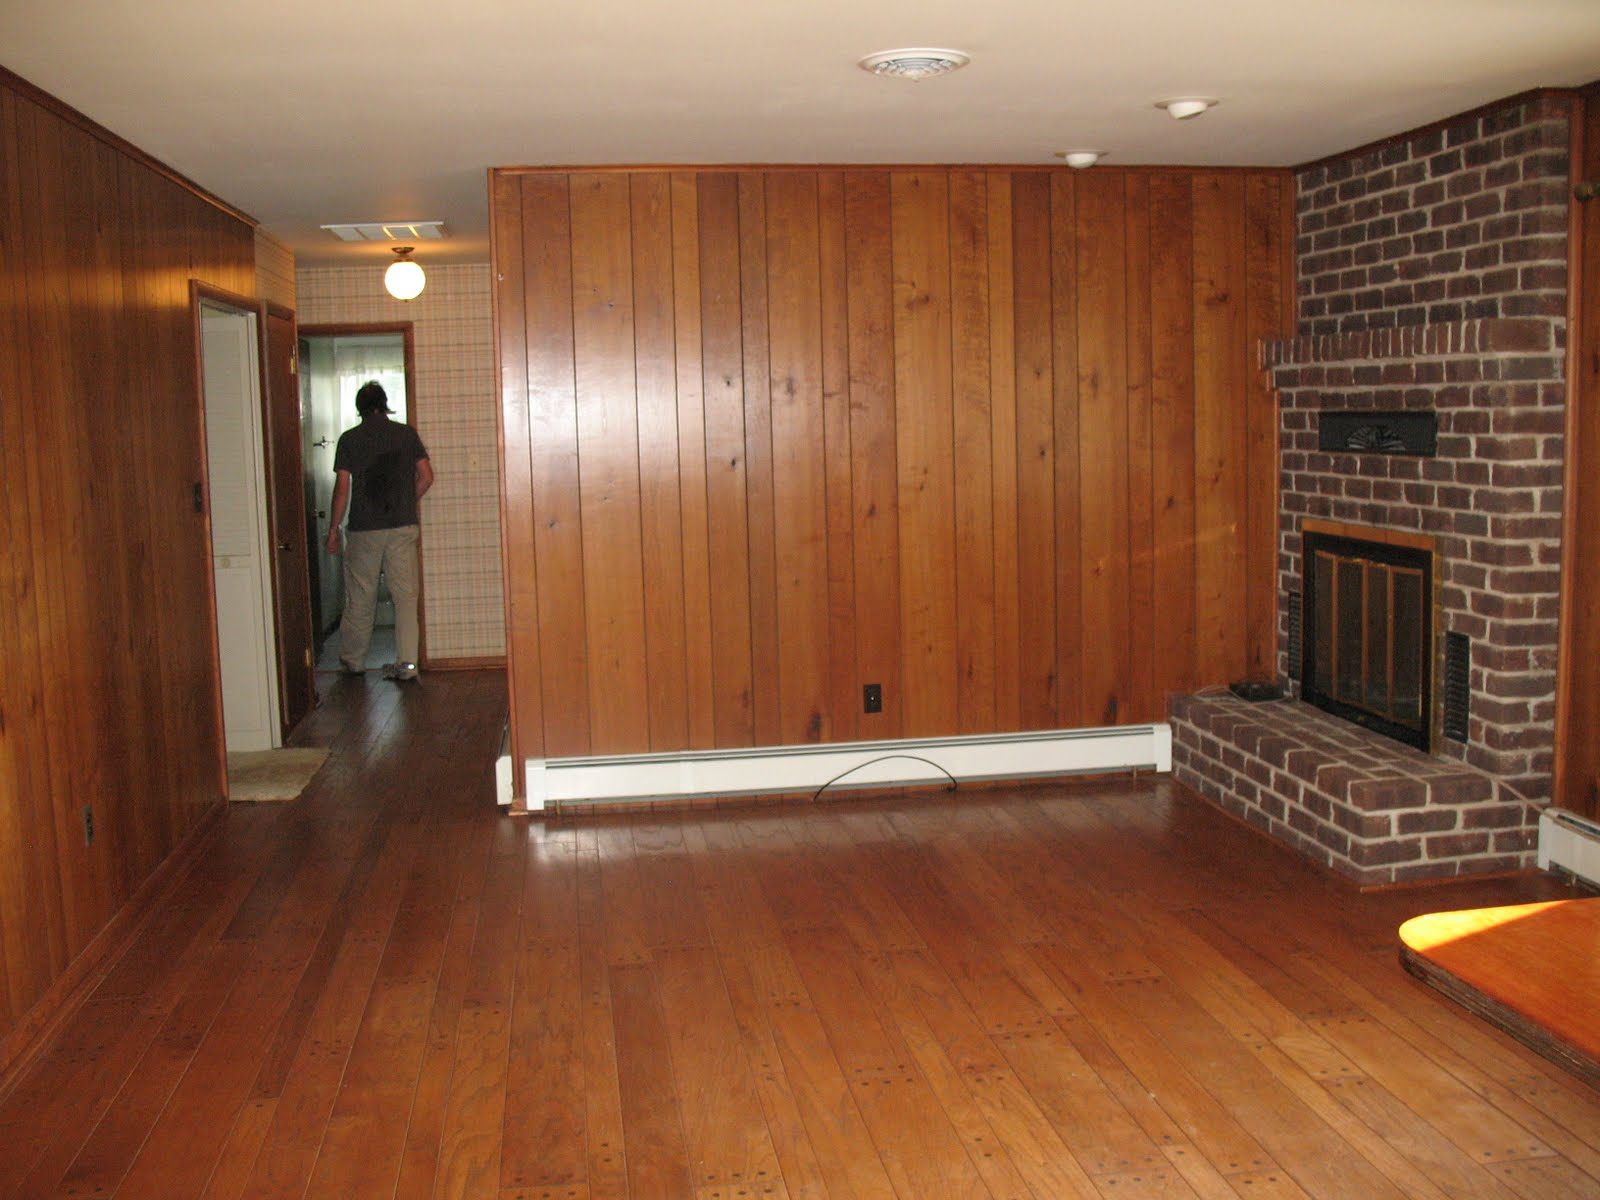 Lara and Bill: Painting wood paneling